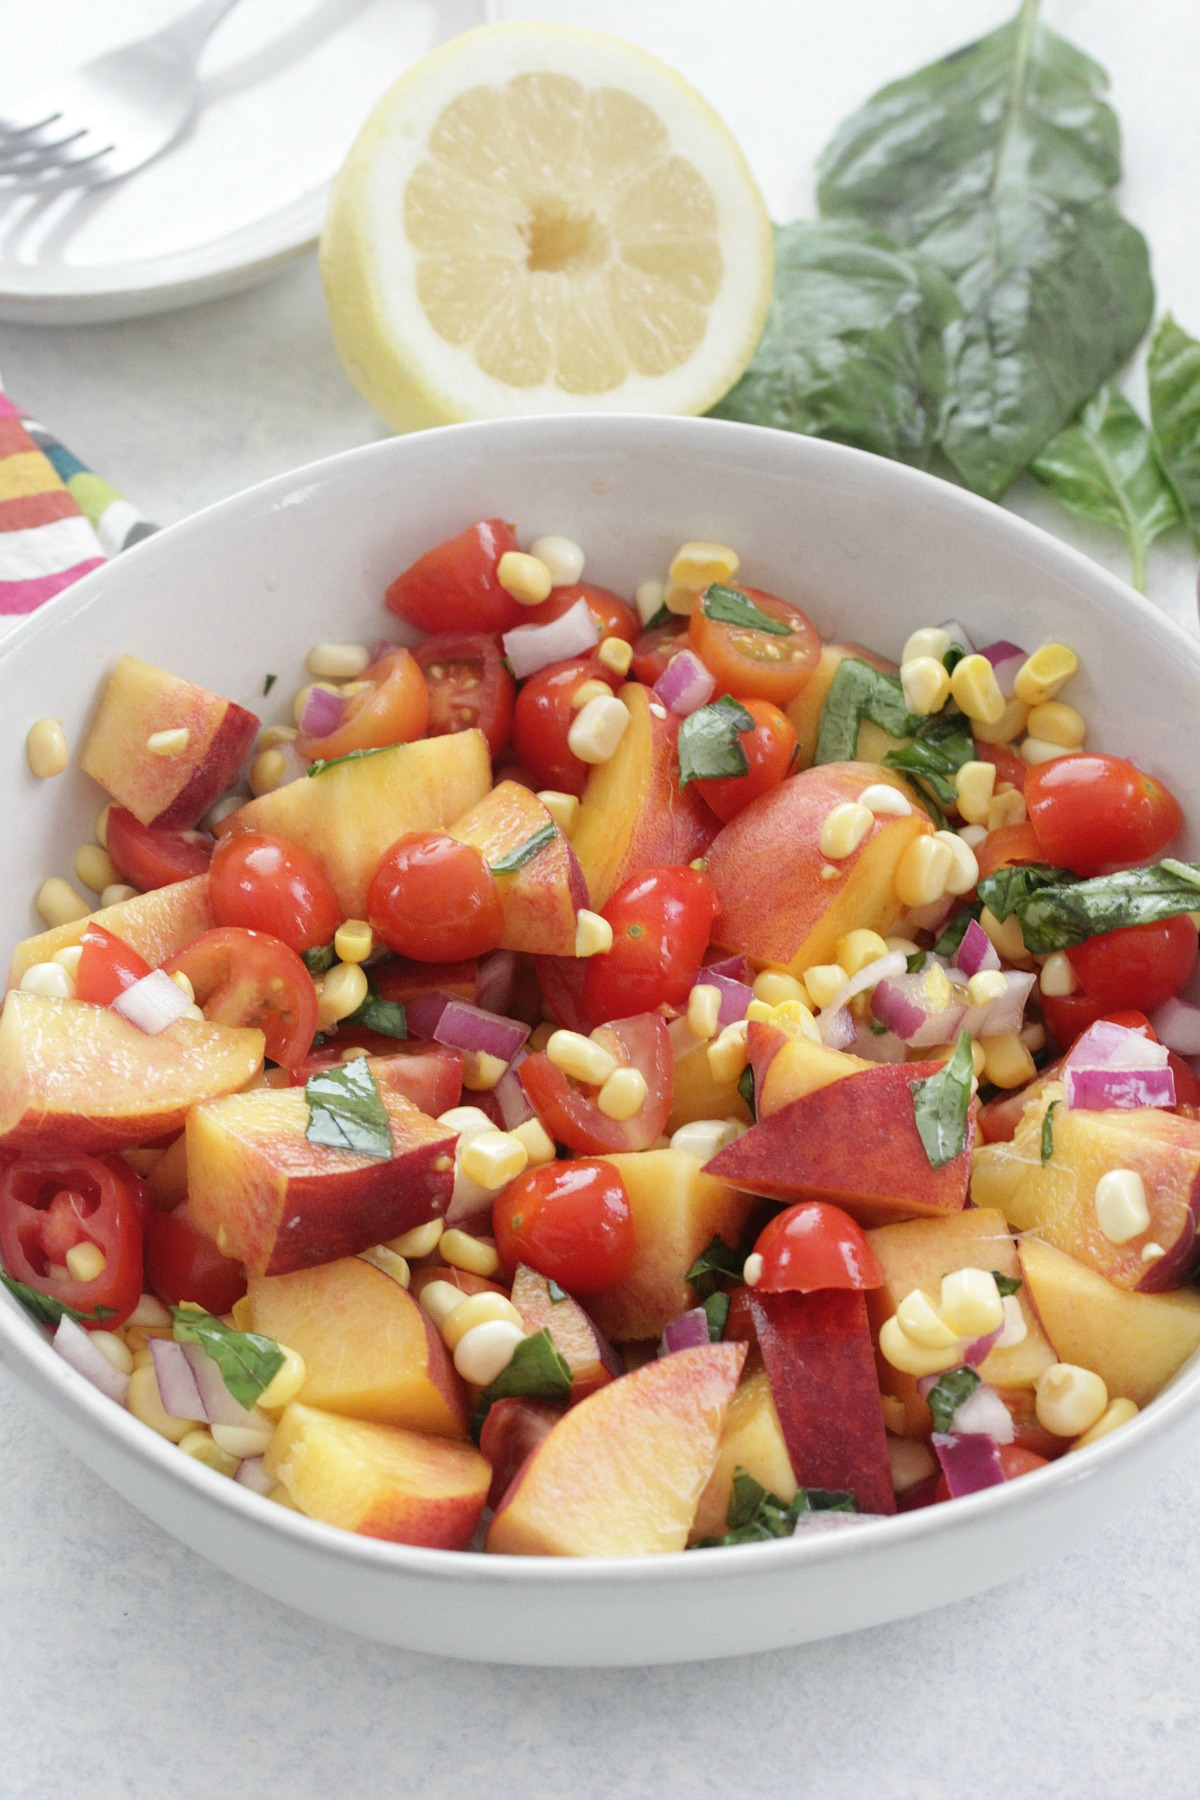 Peach and Tomato Salad in a large white bowl